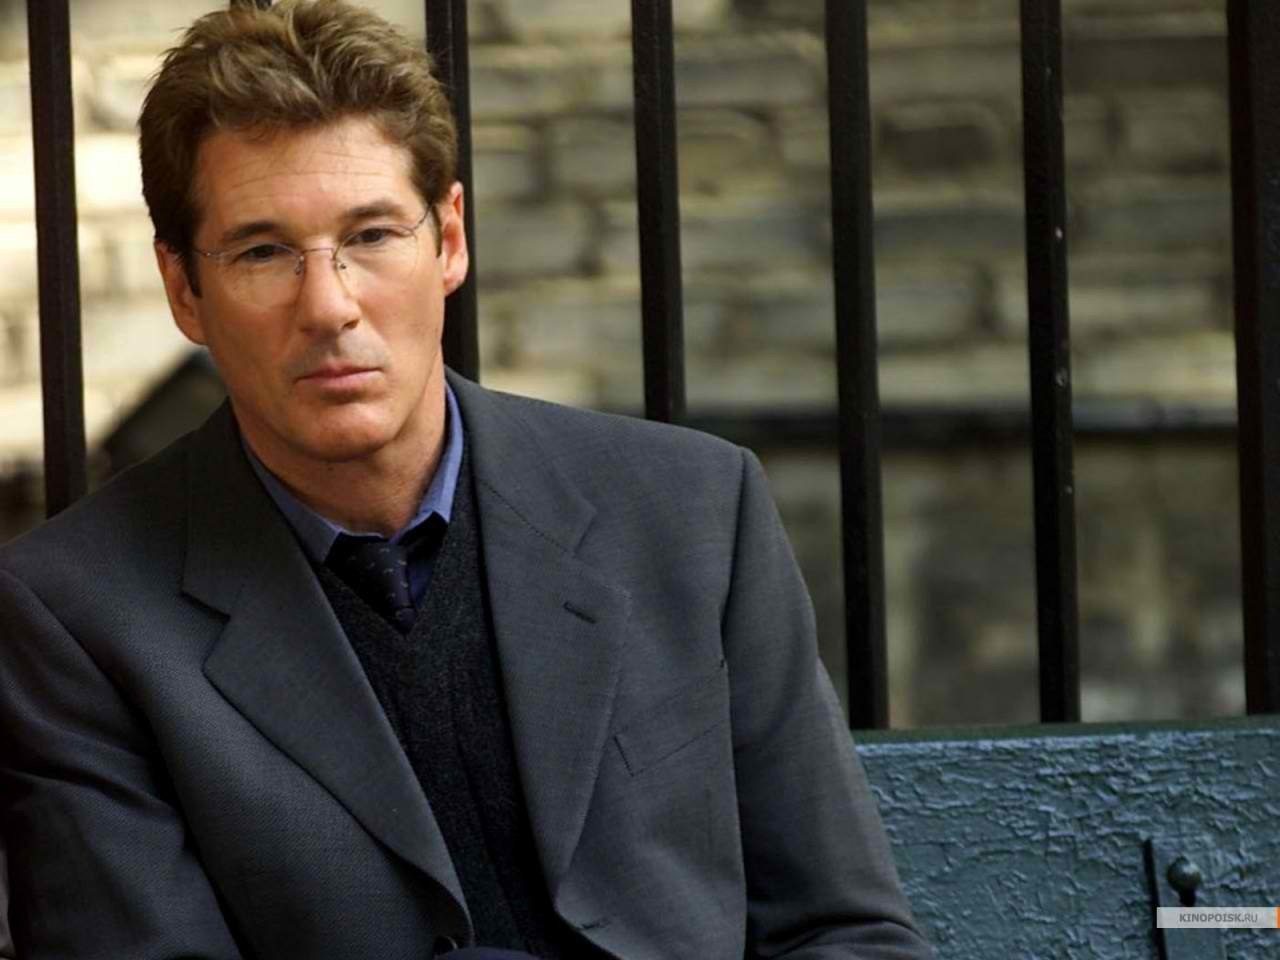 """Richard Tiffany Gere was born August 31, 1949 in Philadelphia,Pennsylvania, U.S.A is anAmericanactor. He began acting in the 1970s, playing a supporting role inLooking for Mr. Goodbar, and a starring role inDays of Heaven. He came to prominence in 1980 for his role in the filmAmerican Gigolo, which established him as a leading man and asex symbol. He went on to star in several hit films, includingAn Officer and a Gentleman,Pretty Woman,Primal Fear,Arbitrage, andChicago, for which he won aGolden GlobeAward as Best Actor, as well as aScreen Actors GuildAward as part of the Best Cast. In 1995 he was the President of the Jury at the19th Moscow International Film Festival.On May 17, 2012,Albanian President,Bamir Topiawarded the """"Medal of Gratitude"""" to Richard Gere with the citation:""""With gratitude and honor outstanding personality of the world art, great humanist and activist for the protection of human rights, which unmasked and the American public made known, and further, inhuman crimes, ethnic cleansing inKosovo, in1999, the Serbian military machine against theAlbaniancivilian population living in its land"""".On February 16, 2012,George Eastman House International Museum for Photography and Filmhonored Gere with theGeorge Eastman Awardfor distinguished contribution to the art of film."""